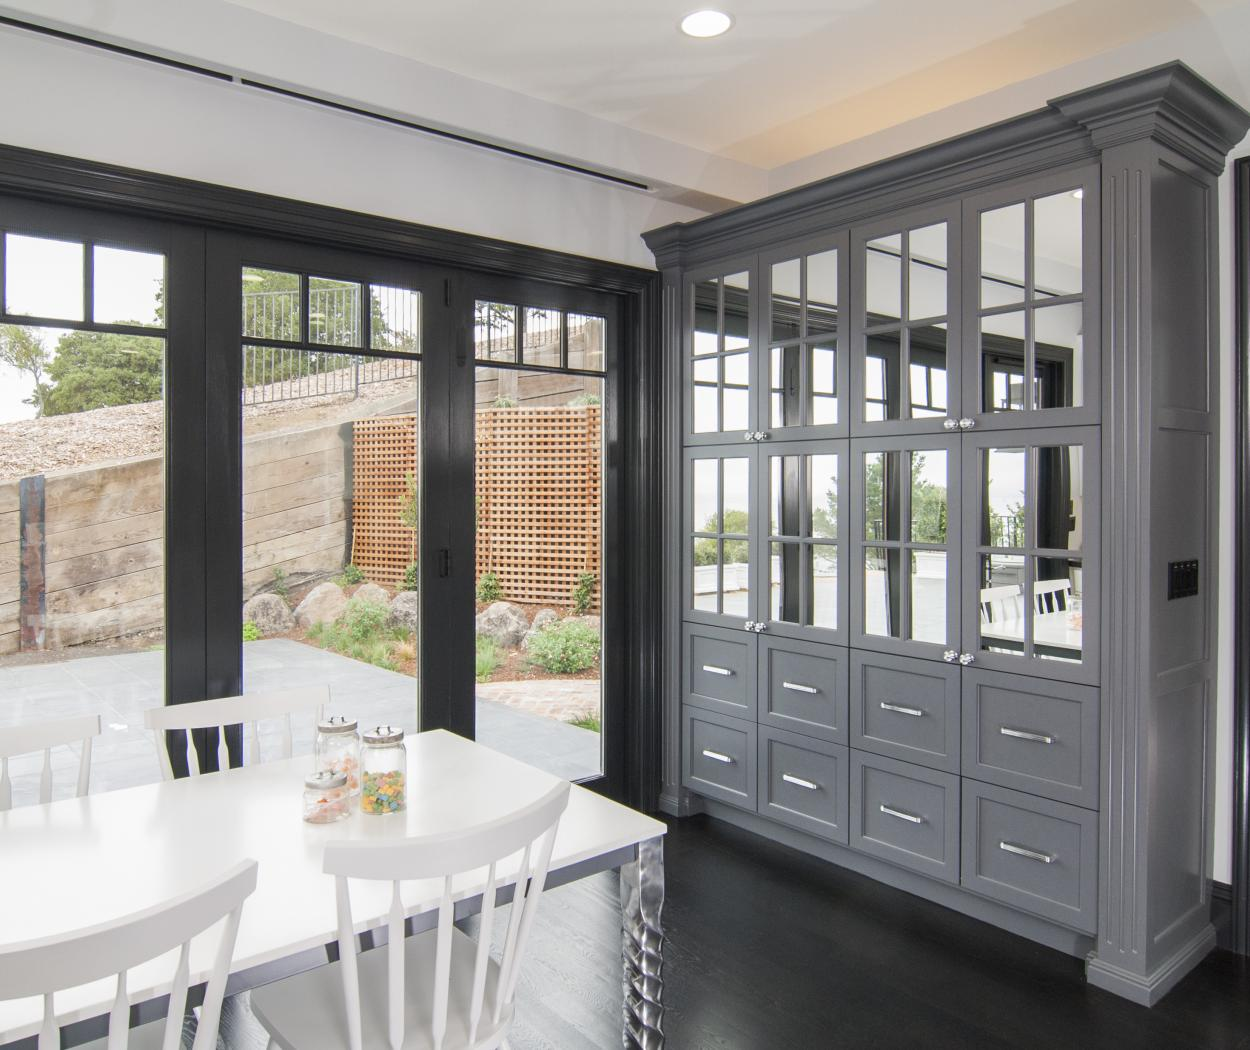 Transitional Light Grey Kitchen Built-In with Beautiful Glass Doors and Silver Pulls